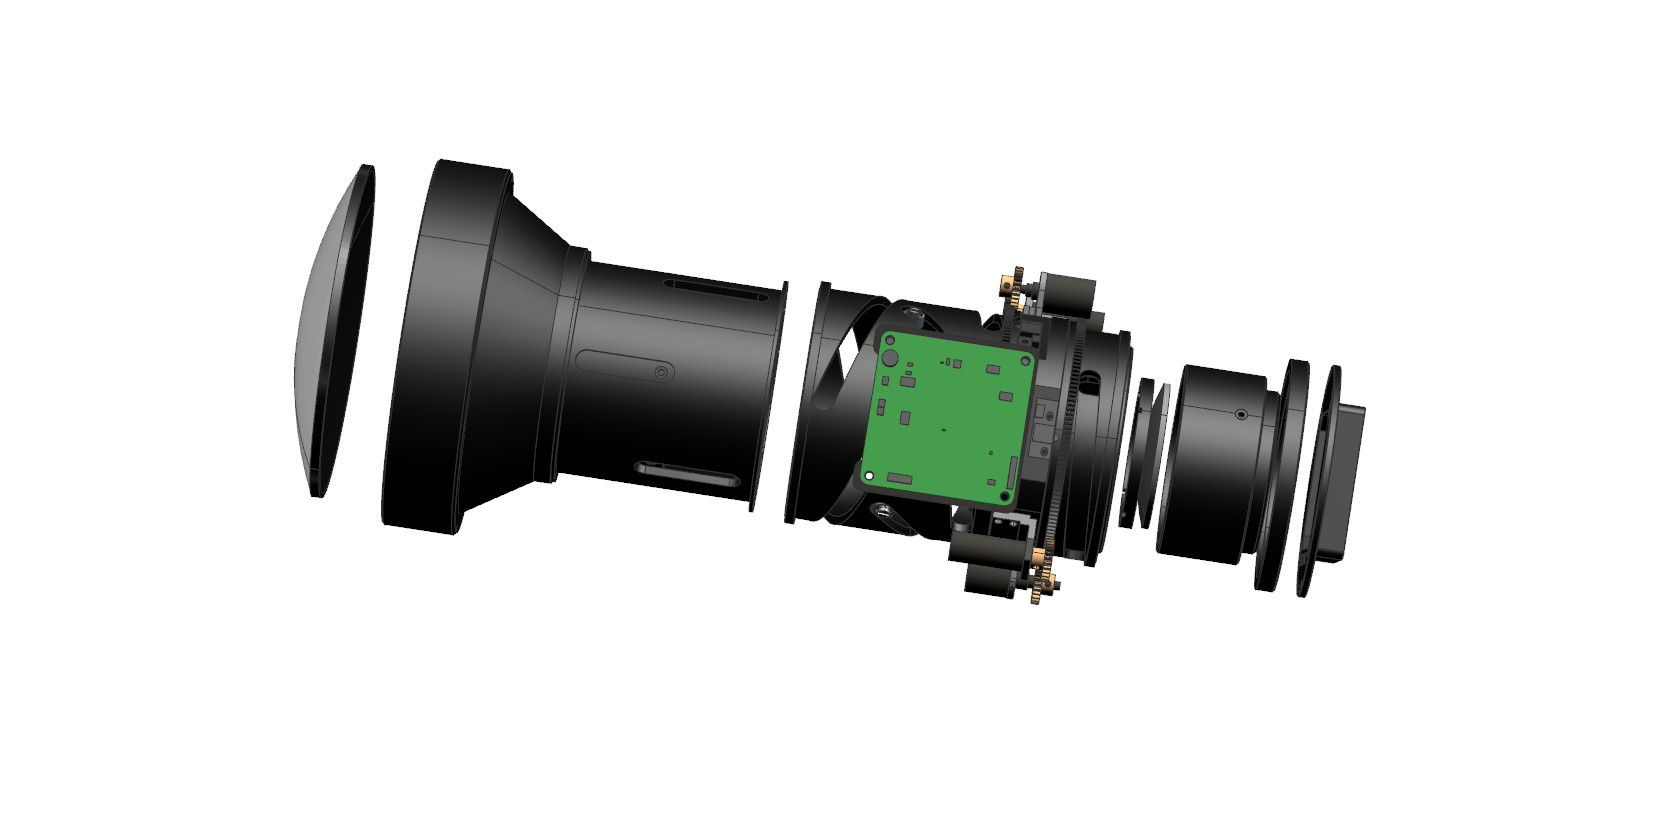 six reasons for the poor image quality of the infrared continuous zoom experience